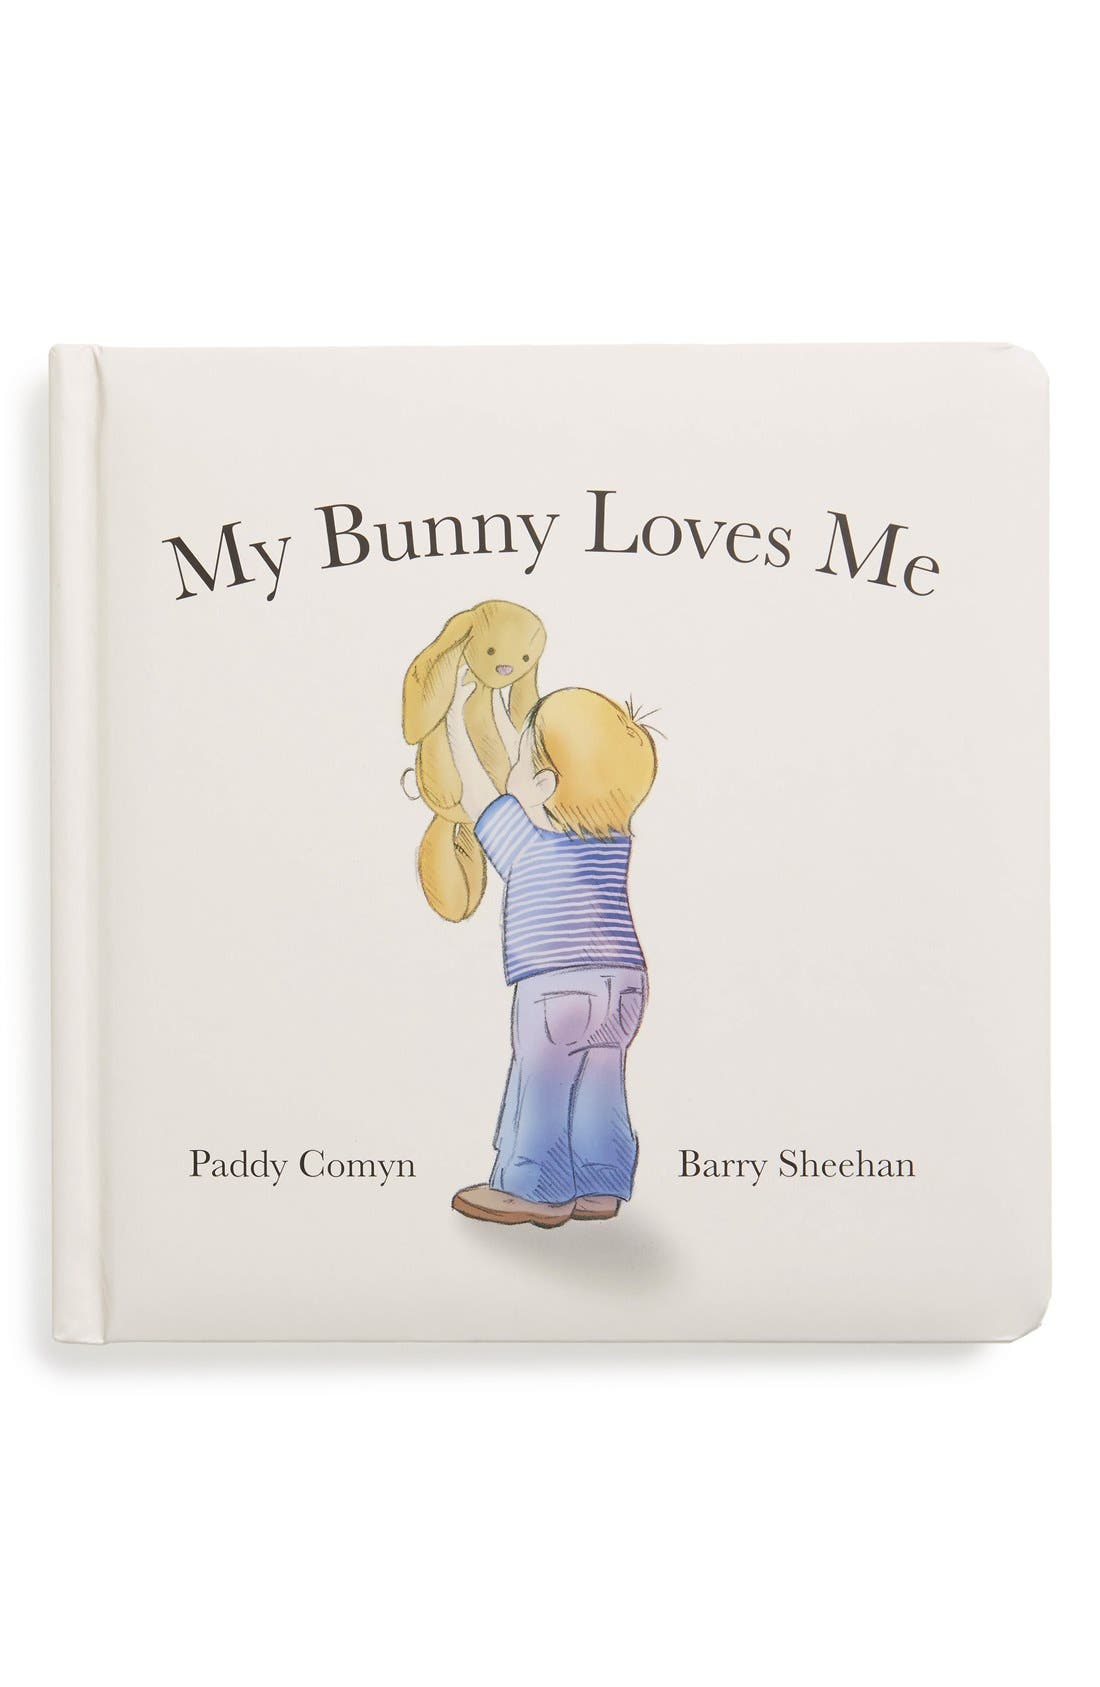 'My Bunny Loves Me' Board Book